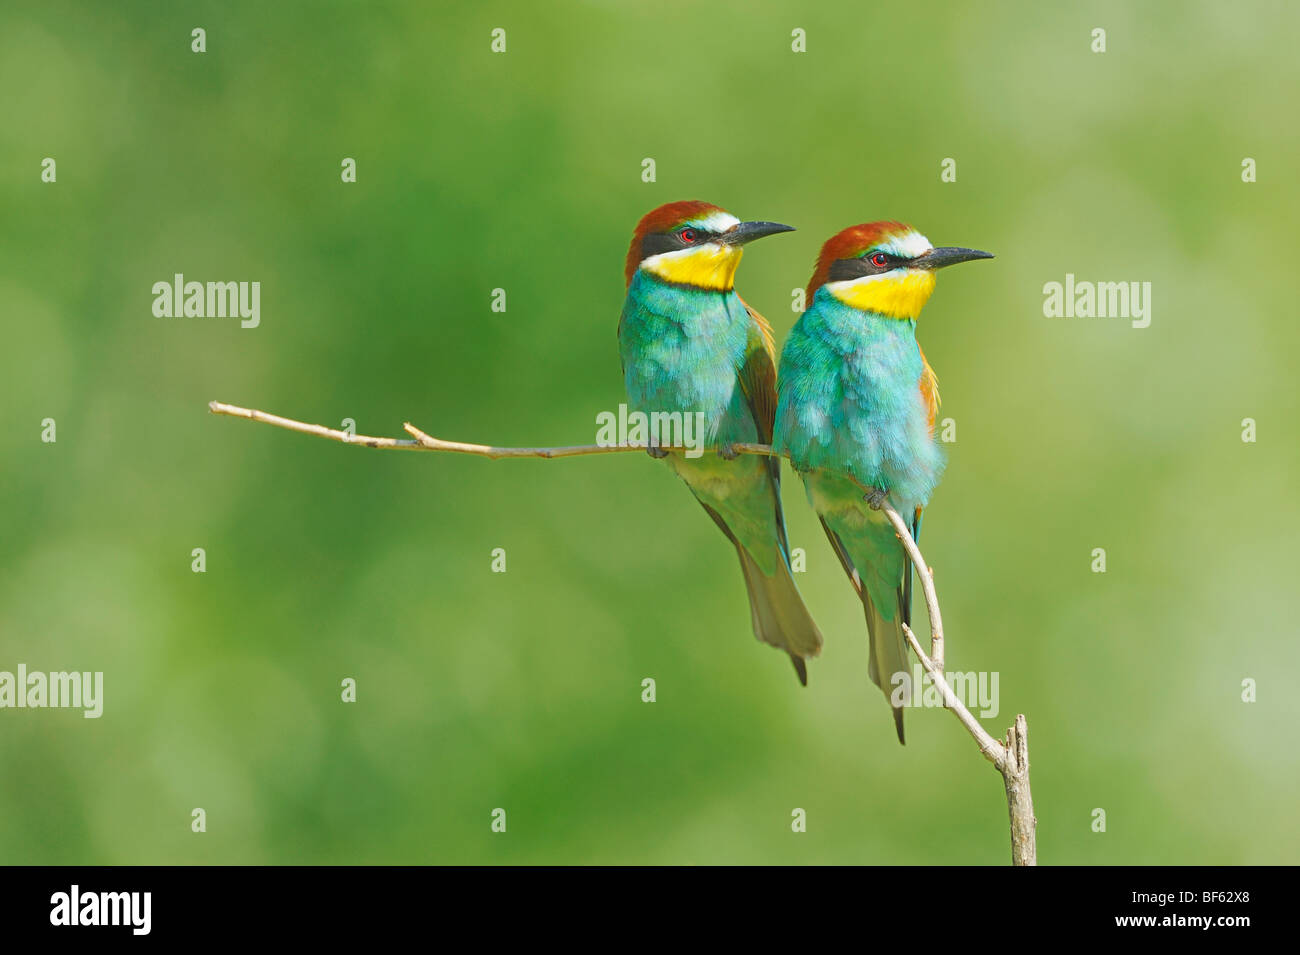 European Bee-eater (Merops apiaster),adults perched, Hungary, Europe Stock Photo